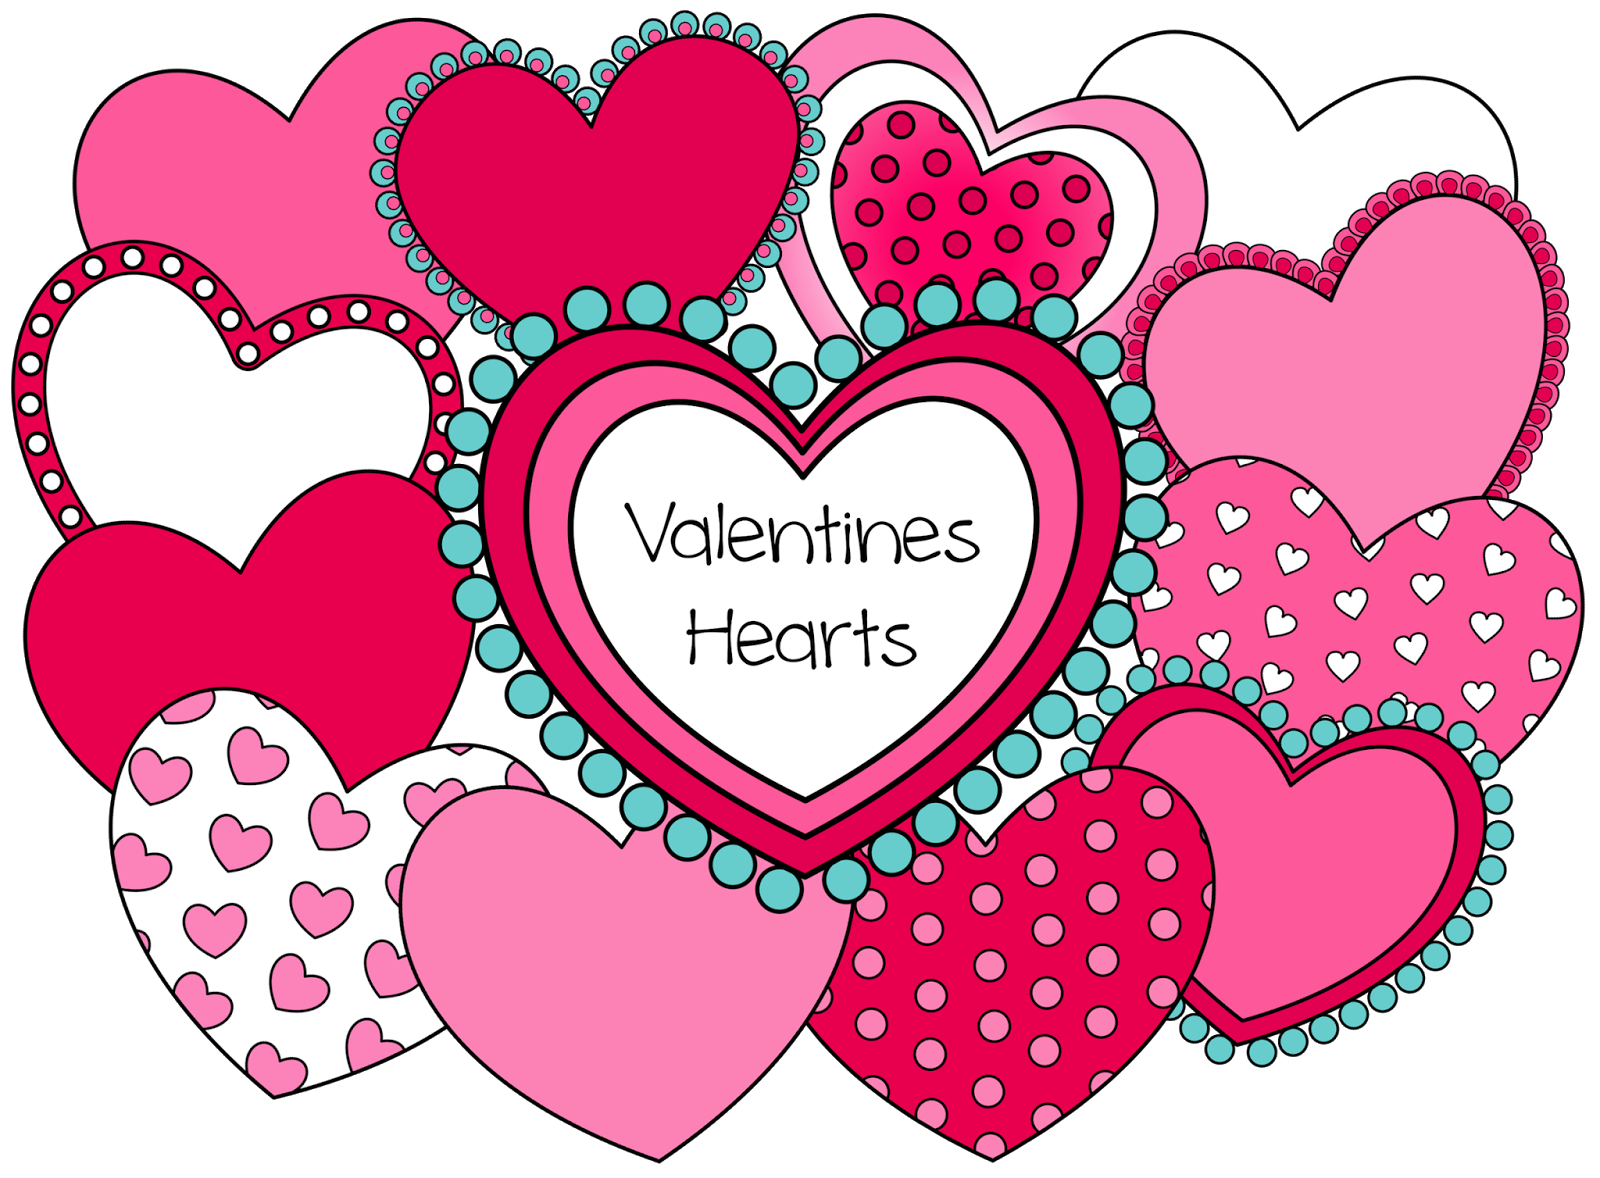 Twelve hearts that you. Mailbox clipart valentine's day